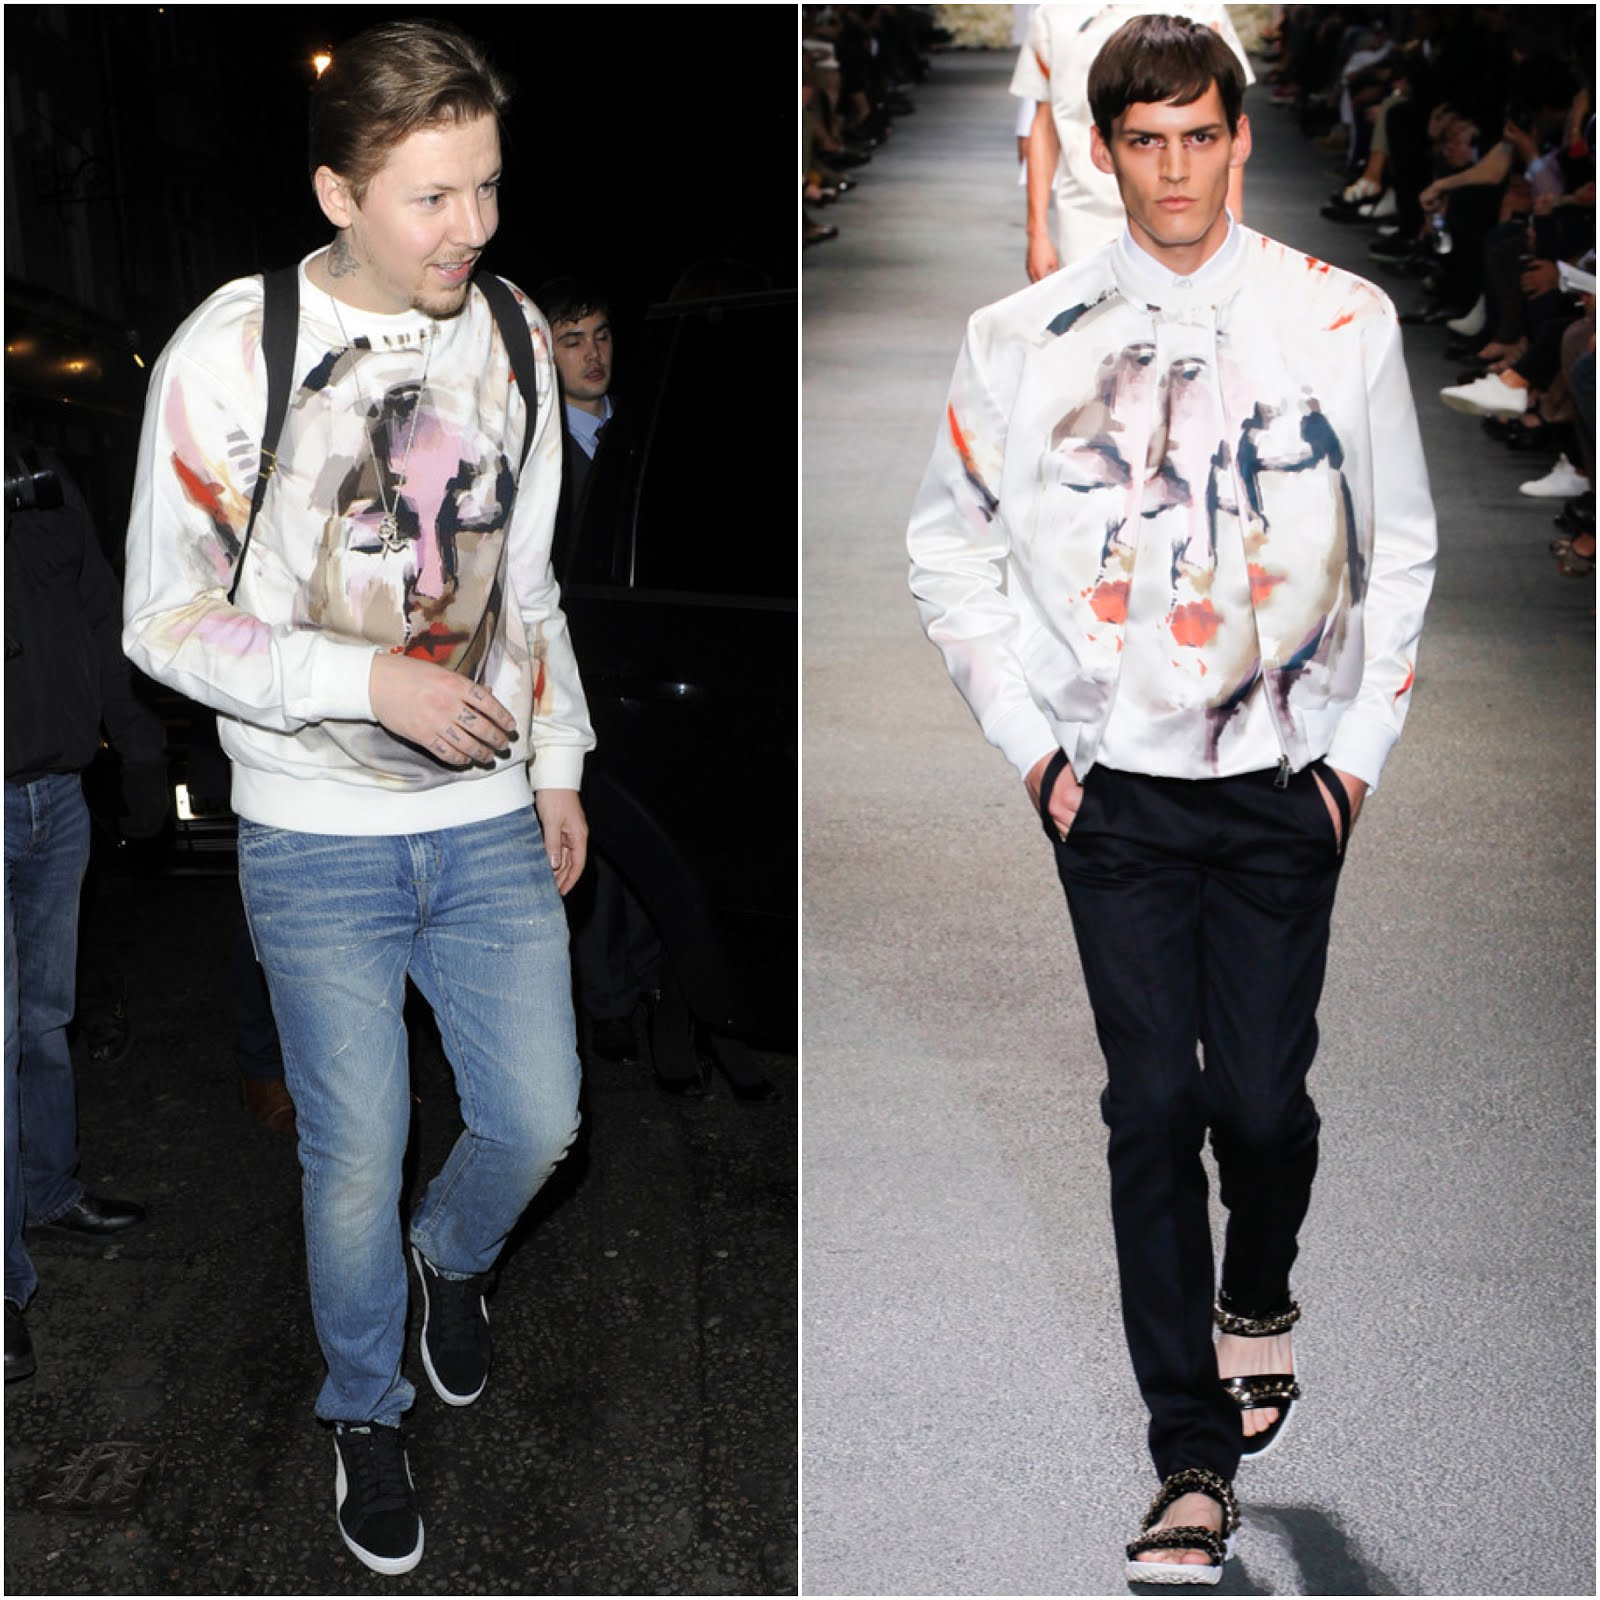 00O00 Menswear Blog Professor Green in Givenchy Madonna print white sweatshirt - engagement party to Millie Mackintosh at Groucho Club in London April 2013